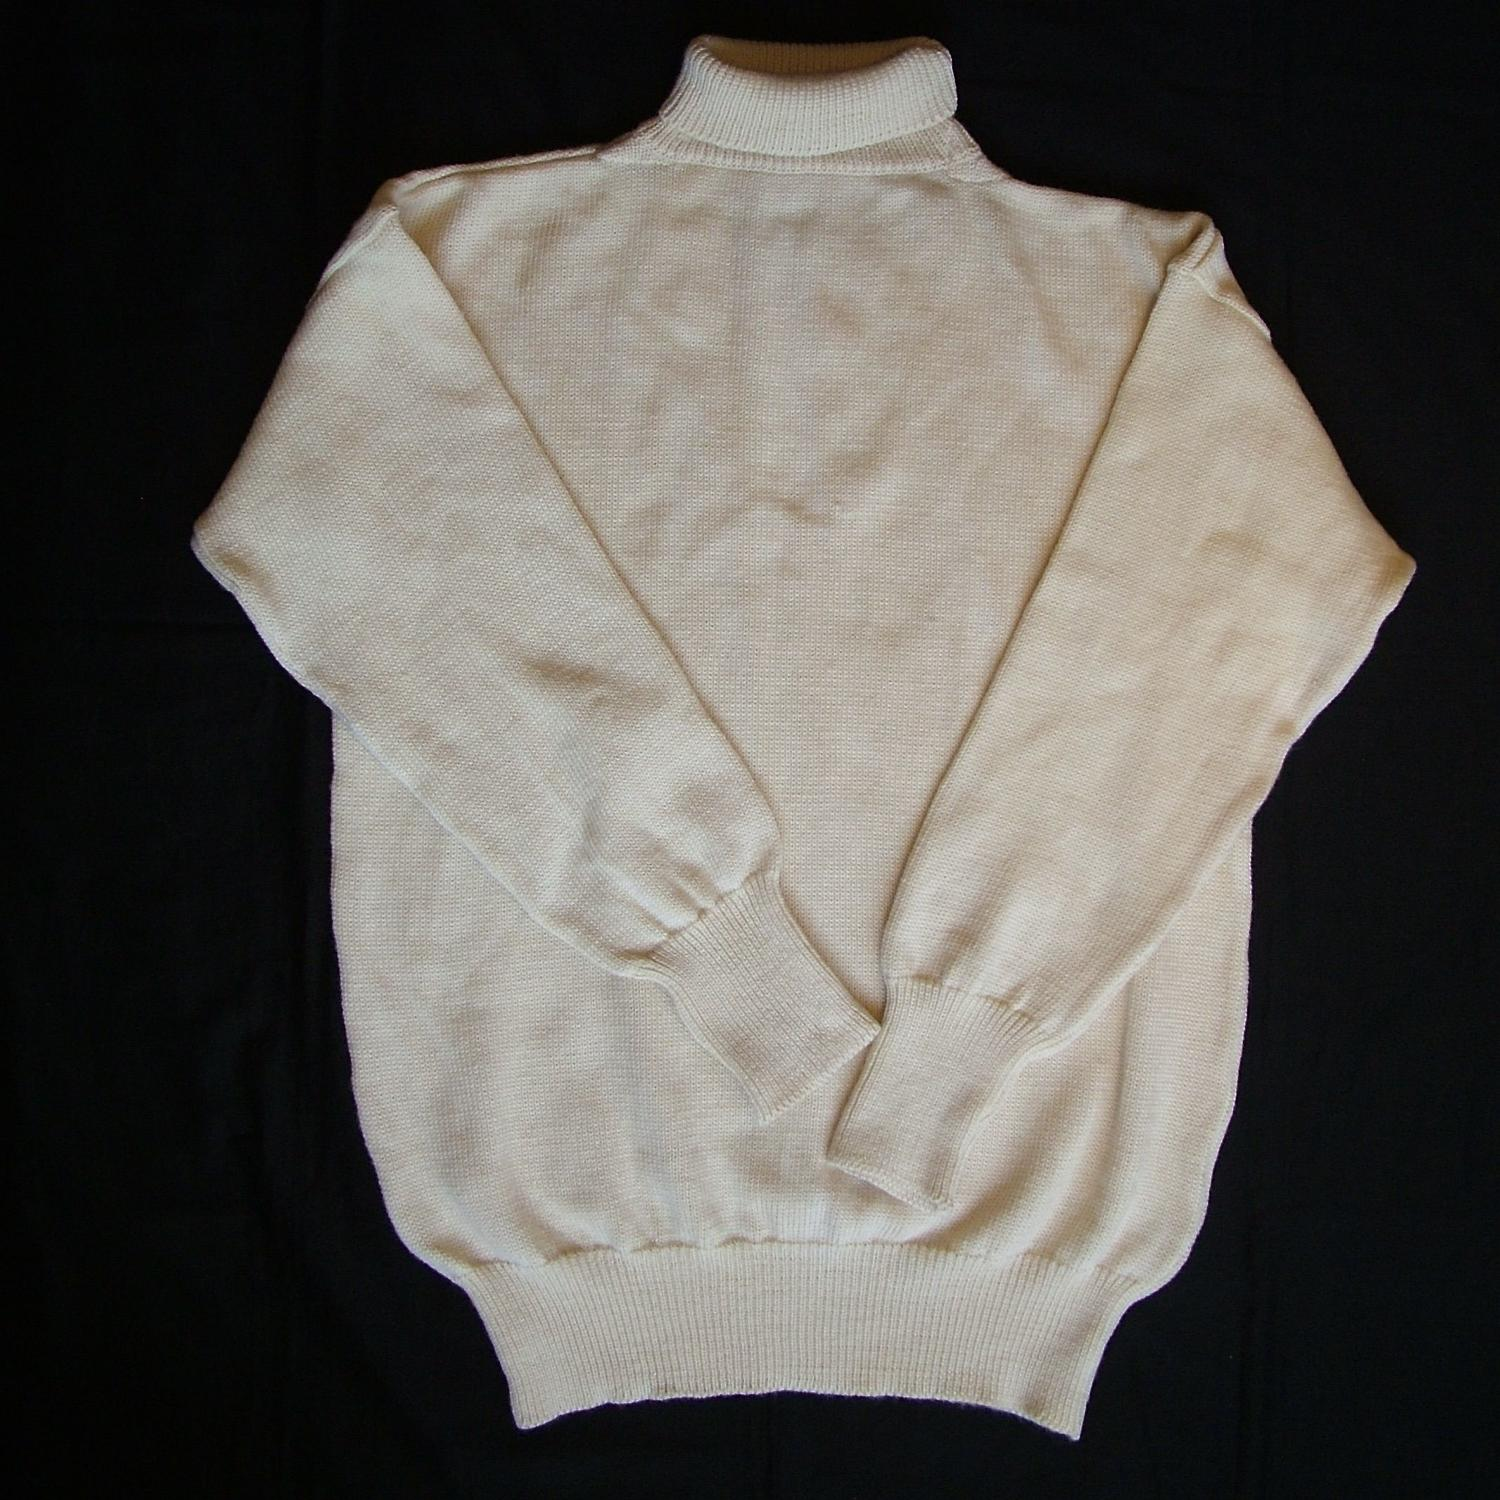 RAF aircrew rollneck - replica, very large size